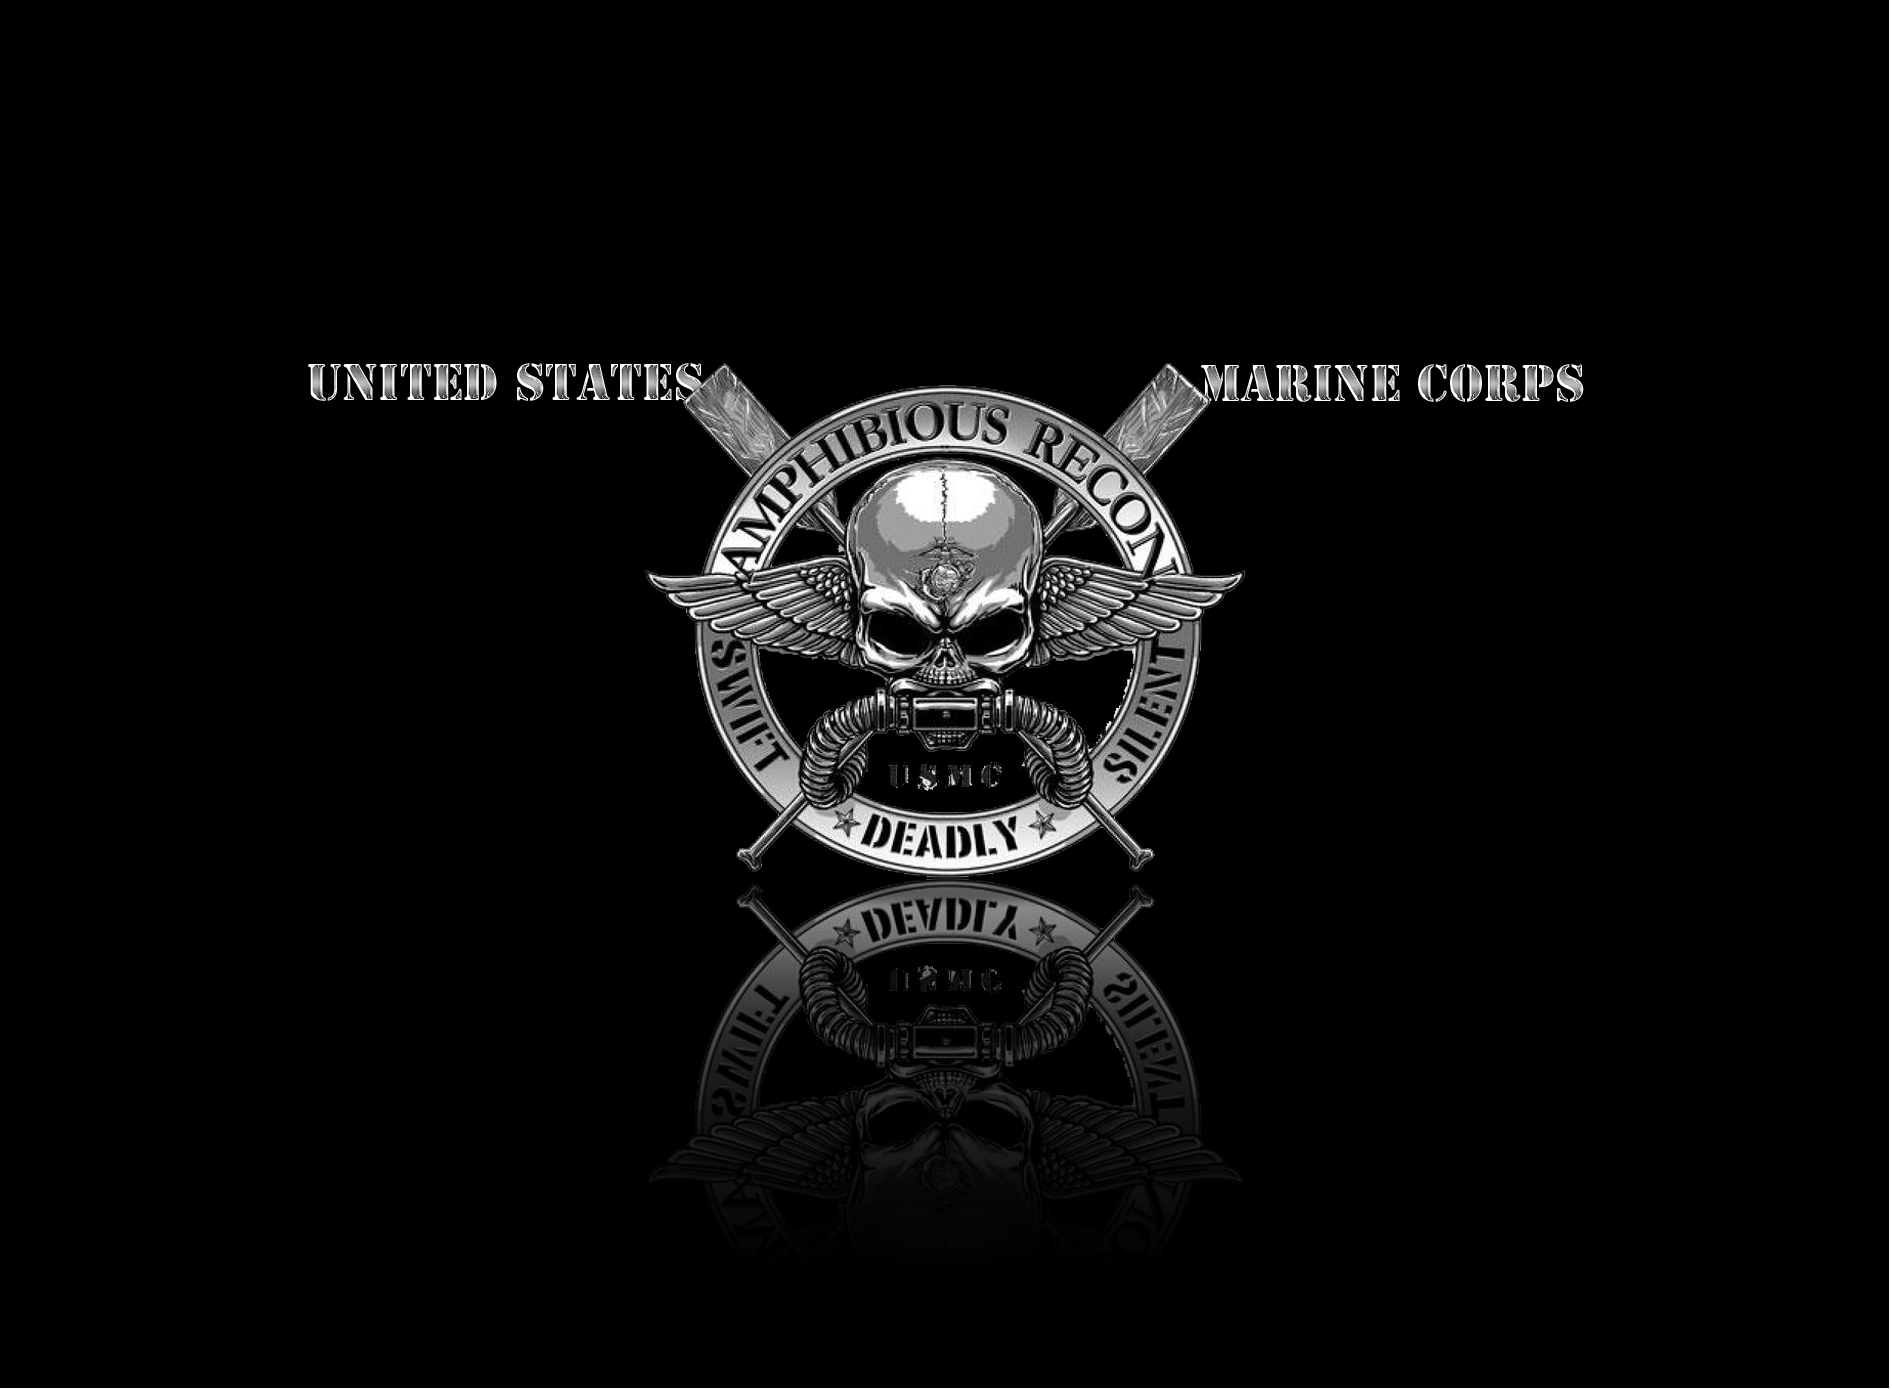 usmc wallpaper for computer | usmc marine corps logo | fun board